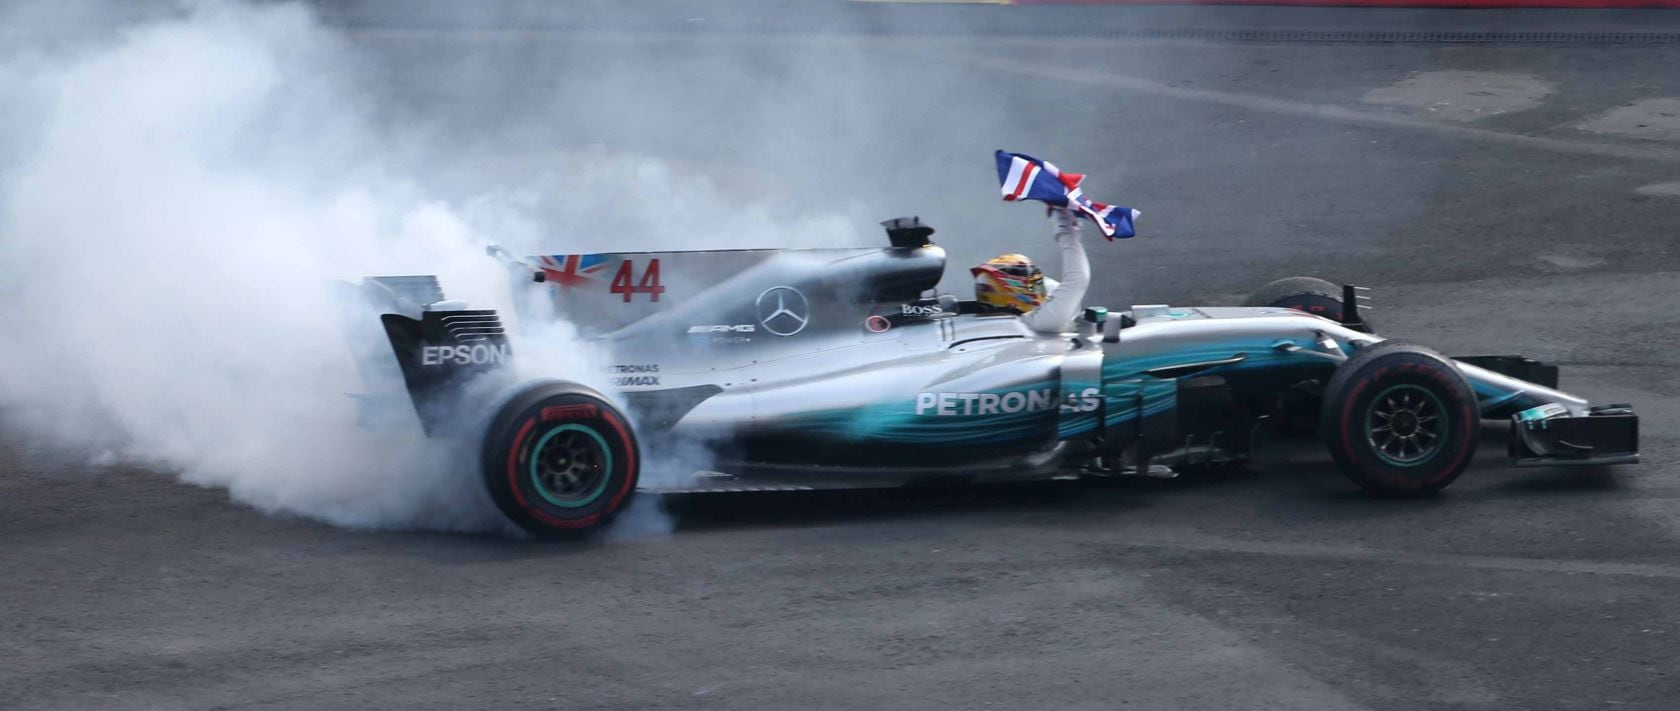 Mexican Grand Prix on 29 October 2017: Lewis Hamilton secures the Formula 1 World Champion title early on for MERCEDES AMG PETRONAS in the F1 W08 EQ Power+.